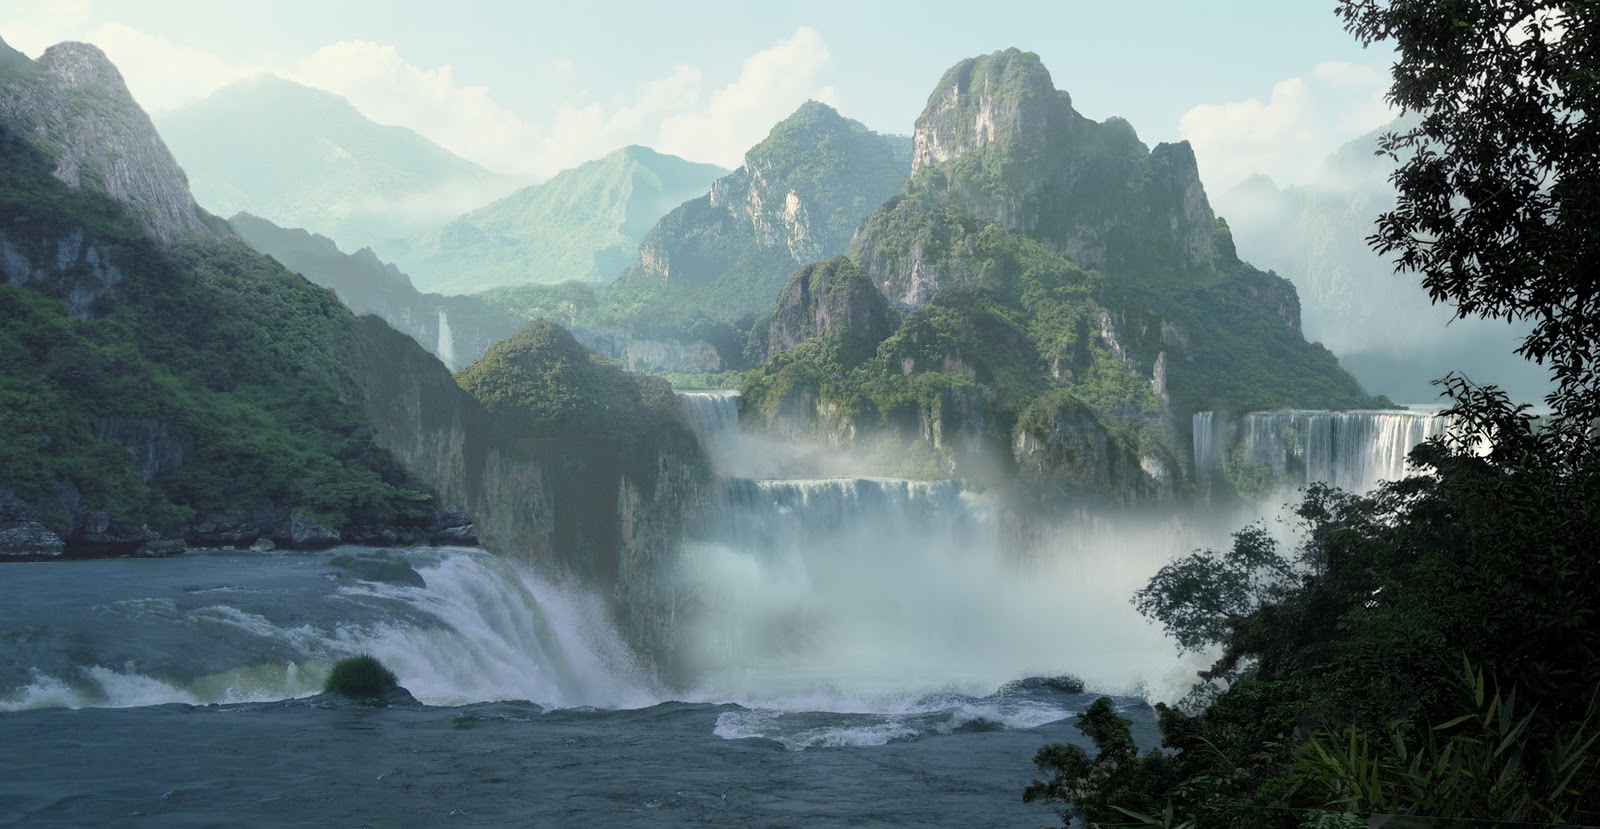 Learning concept art and matte painting for Matte painting